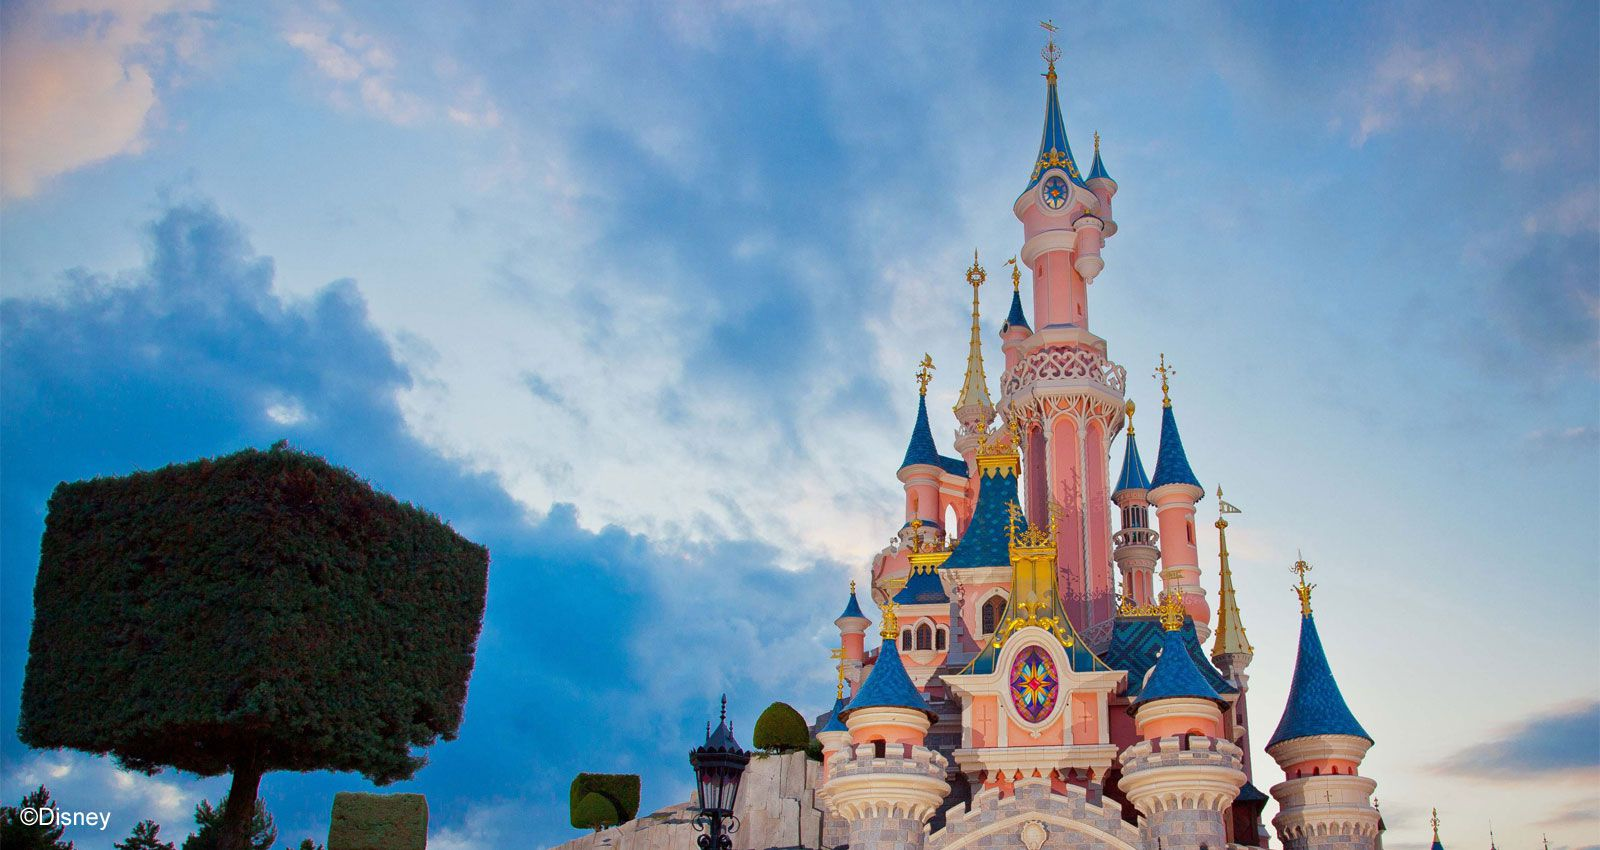 case study on disney land theme park Hong kong disney land case study the planned theme park in shanghai looks to address specific needs of the china market and has the potential to be a.